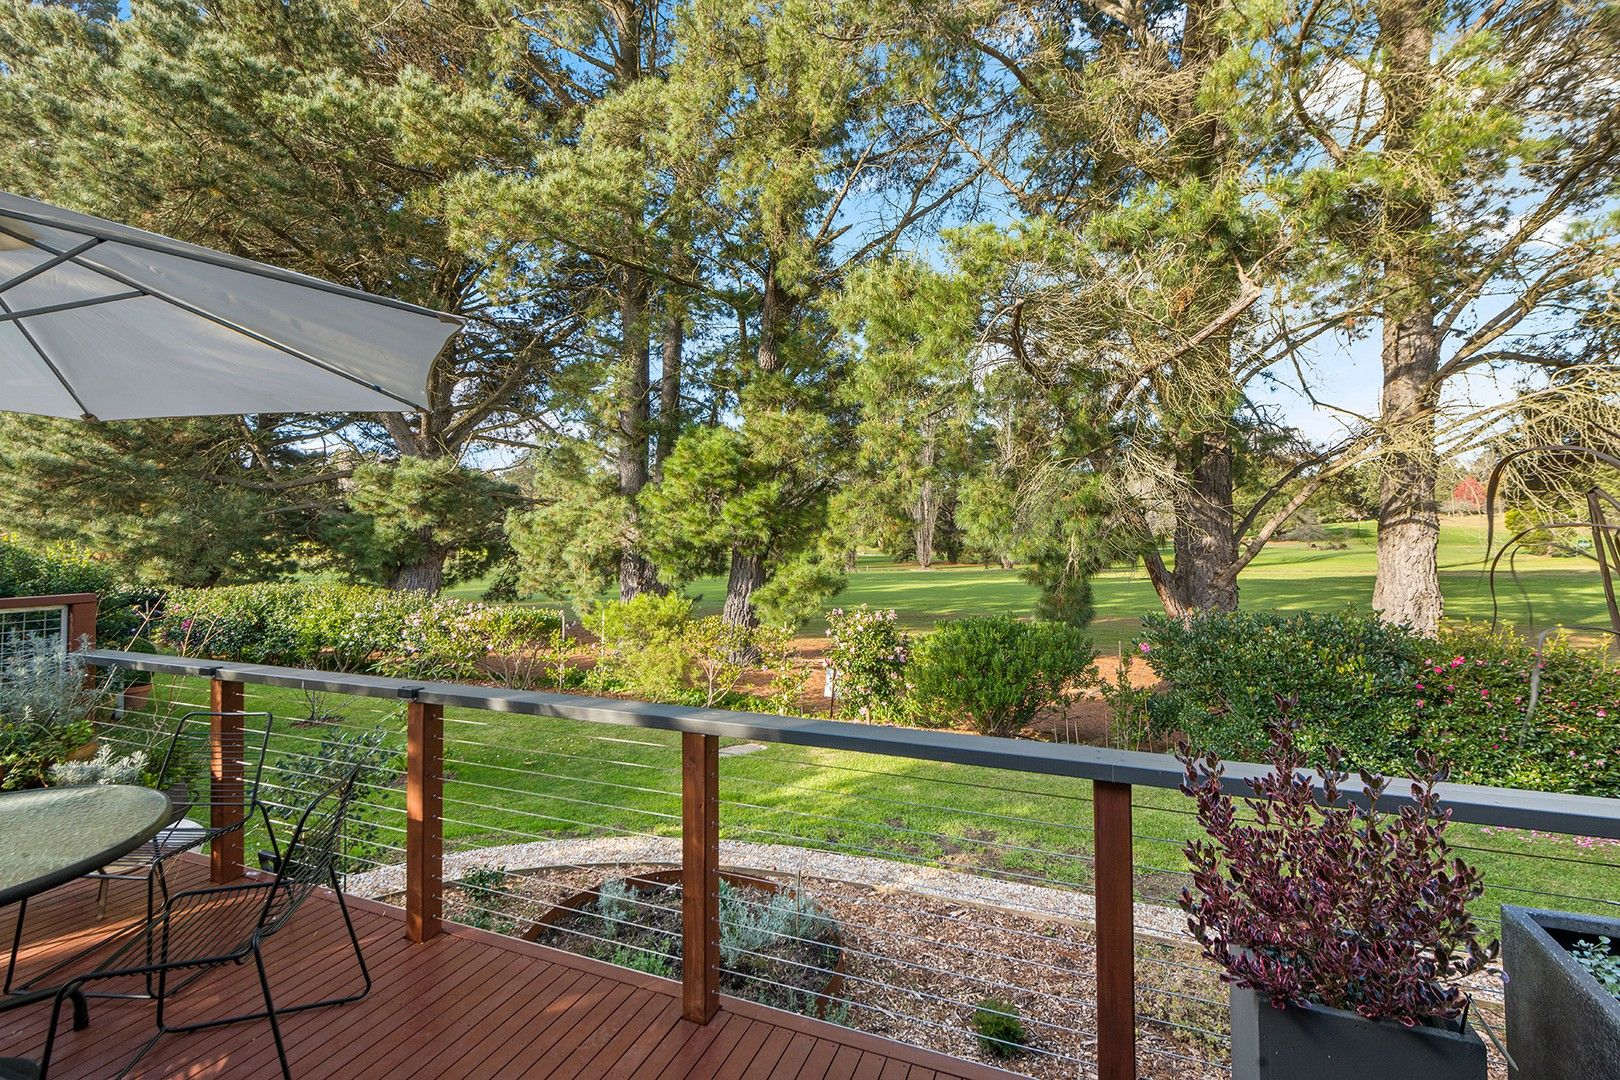 49/502 Moss Vale Road, Bowral NSW 2576, Image 0